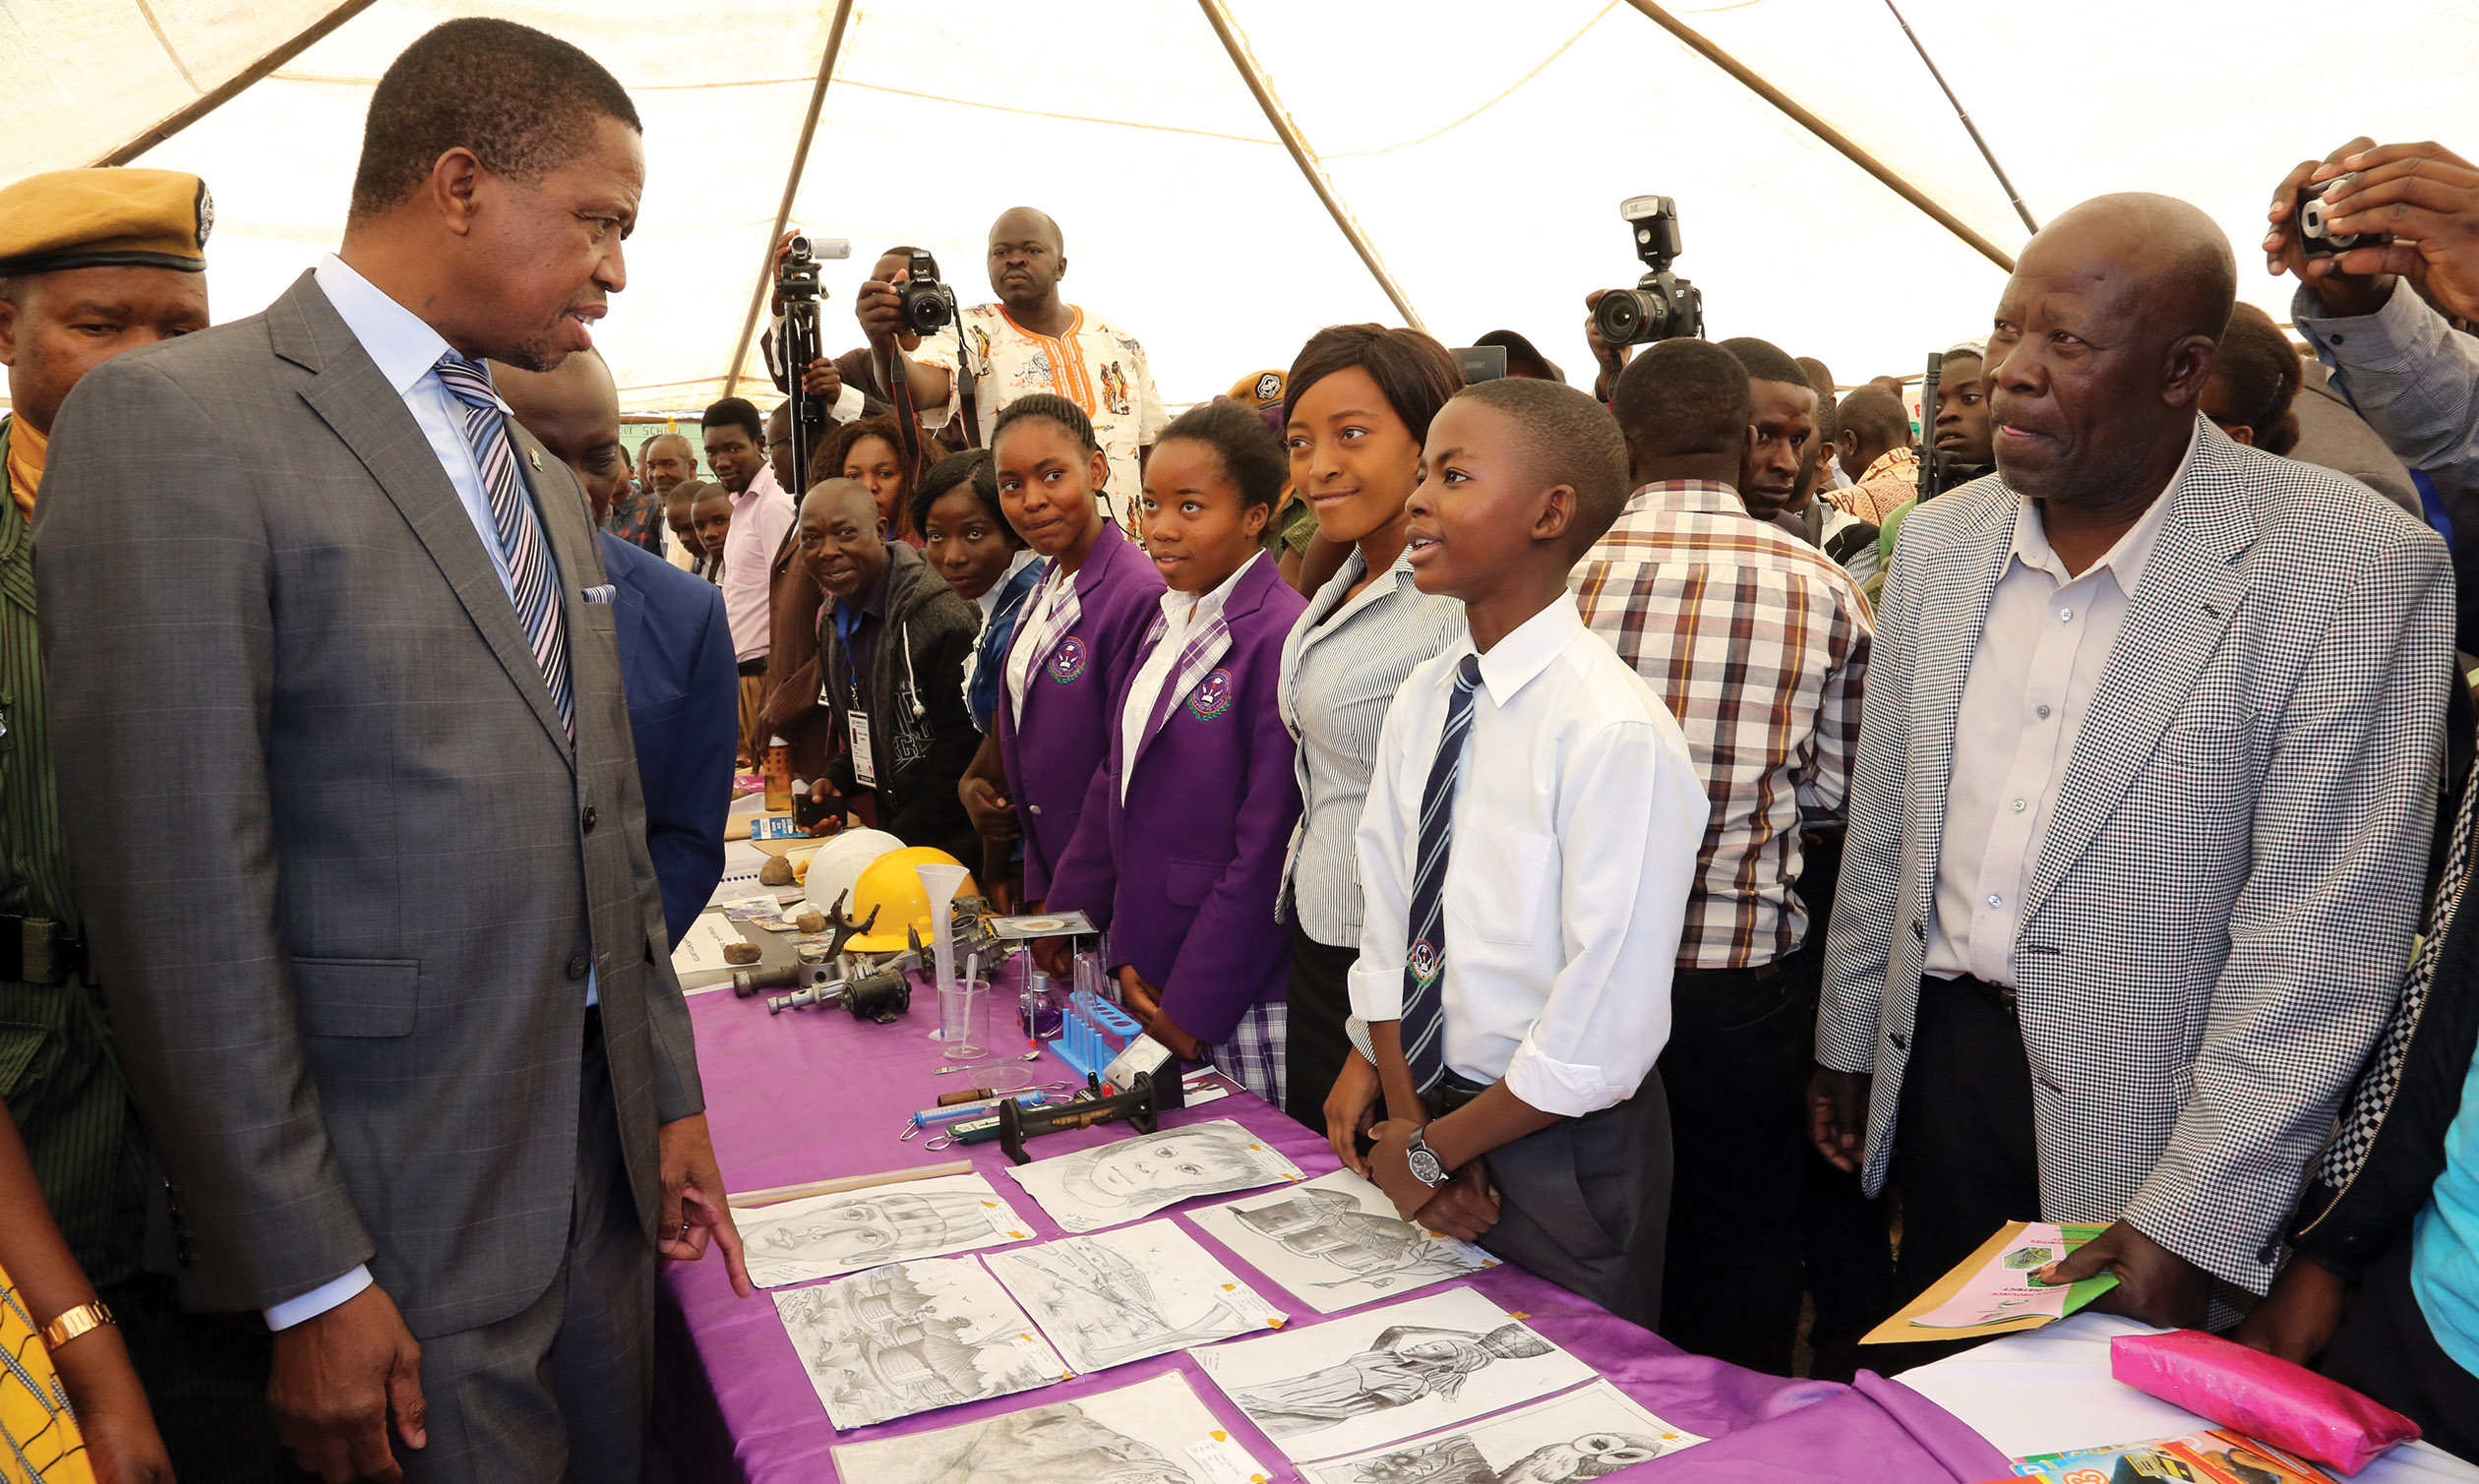 PRESIDENT Lungu talks to 13-year-old Cosmas Mulenga, an art student of Fordina Pandeni Secondary School, at the on-going Luapula Expo in Mansa yesterday. PICTURE: EDDIE MWANALEZA/STATE HOUSE